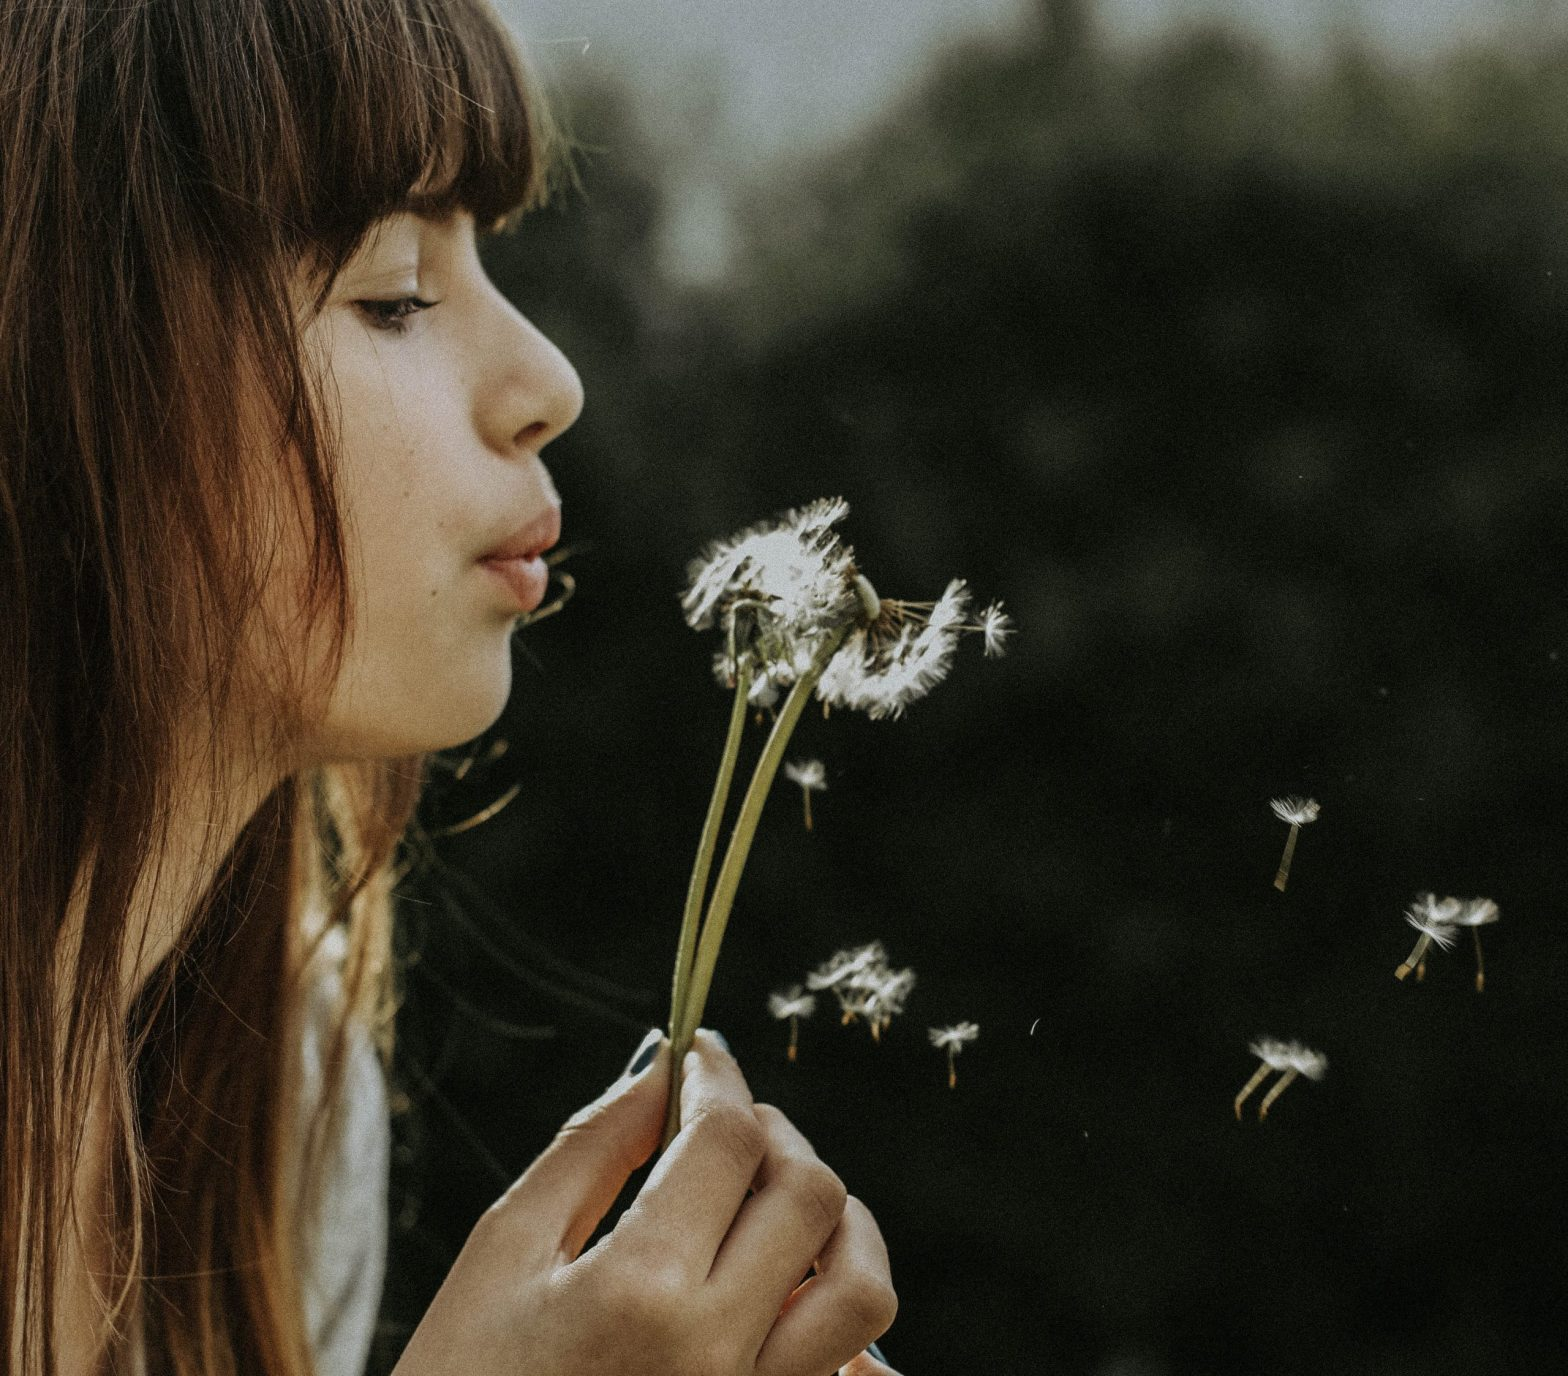 Woman blowing a dandelion, wishing to attract a healthy partner